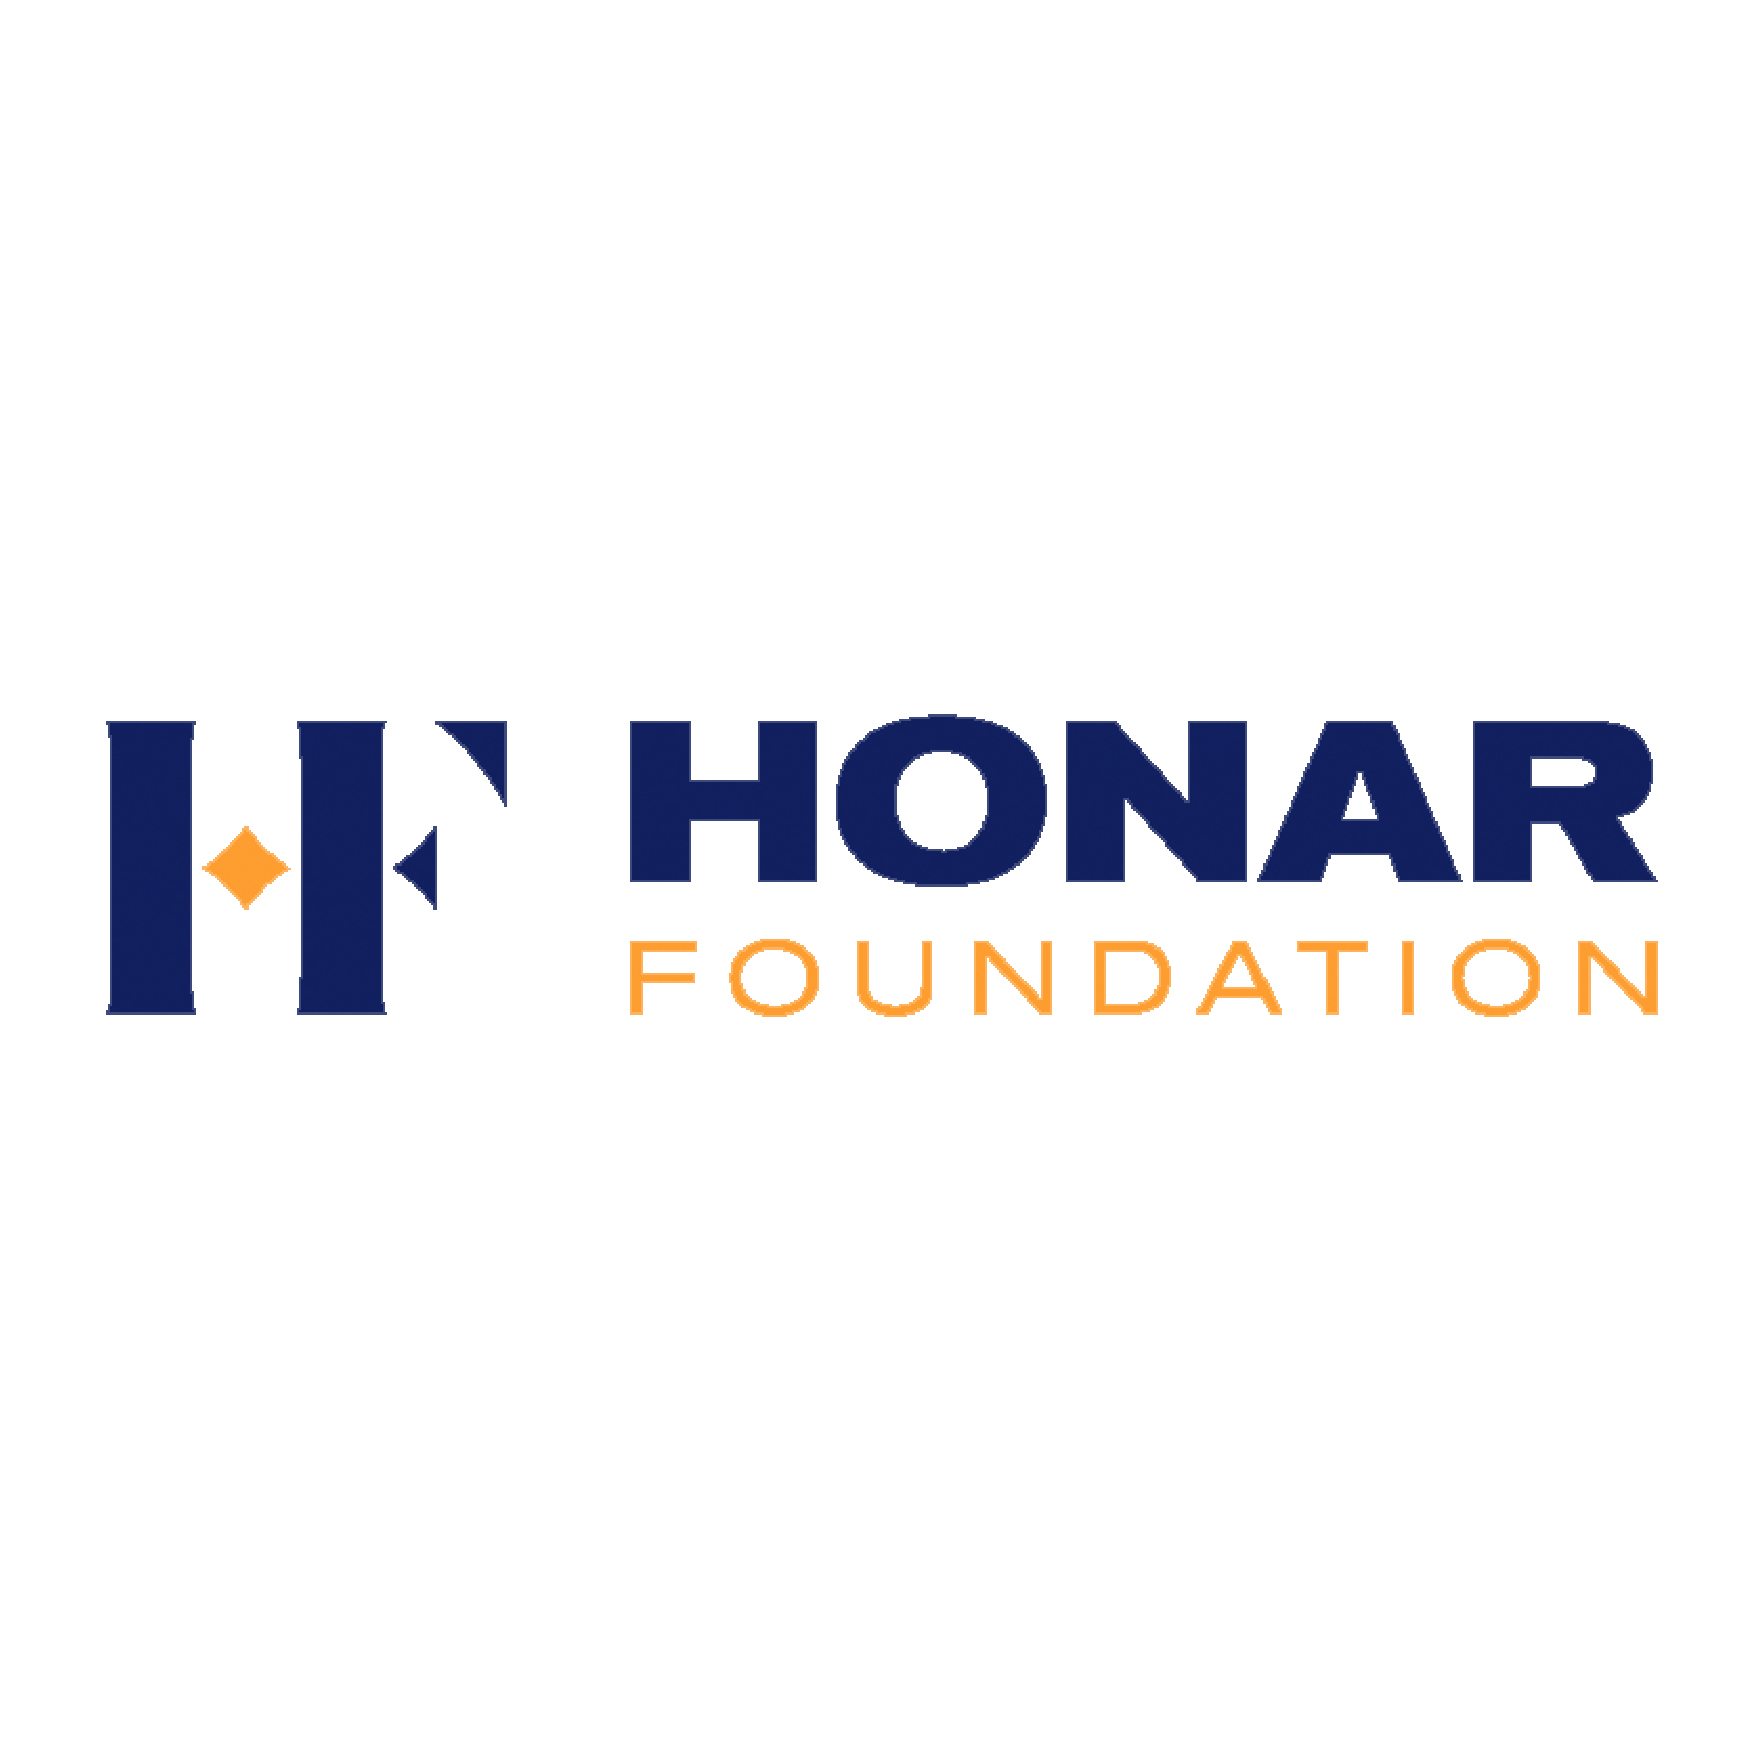 Honar Foundation